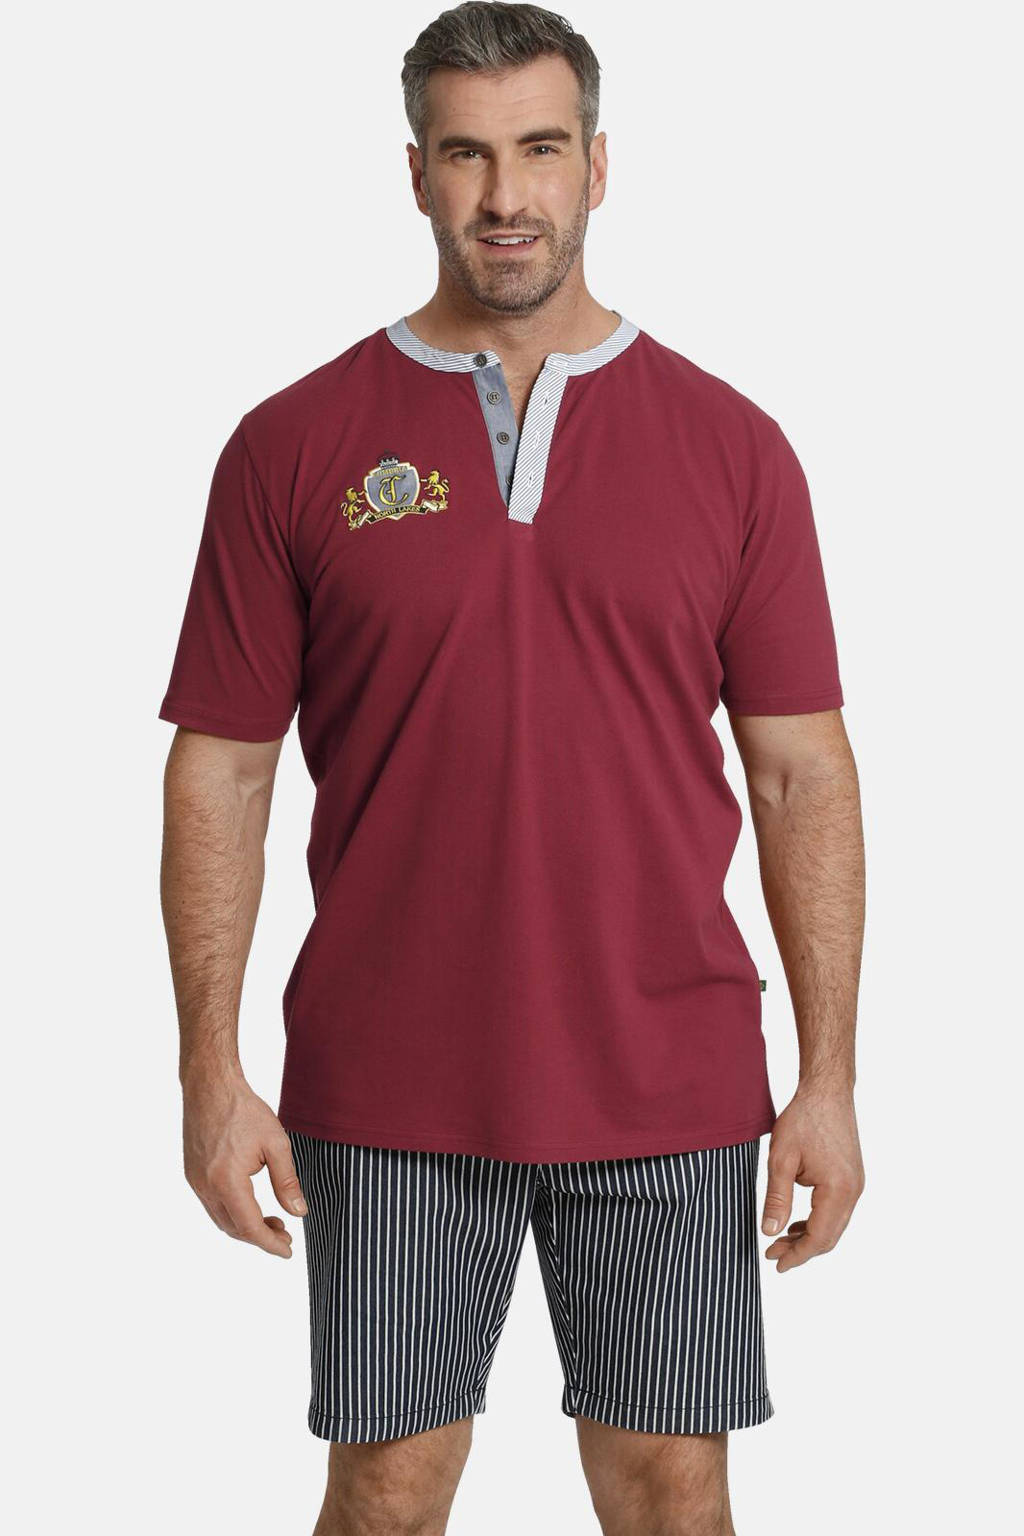 Charles Colby T-shirt Earl Tebbe Plus Size met contrastbies donkerrood, Donkerrood